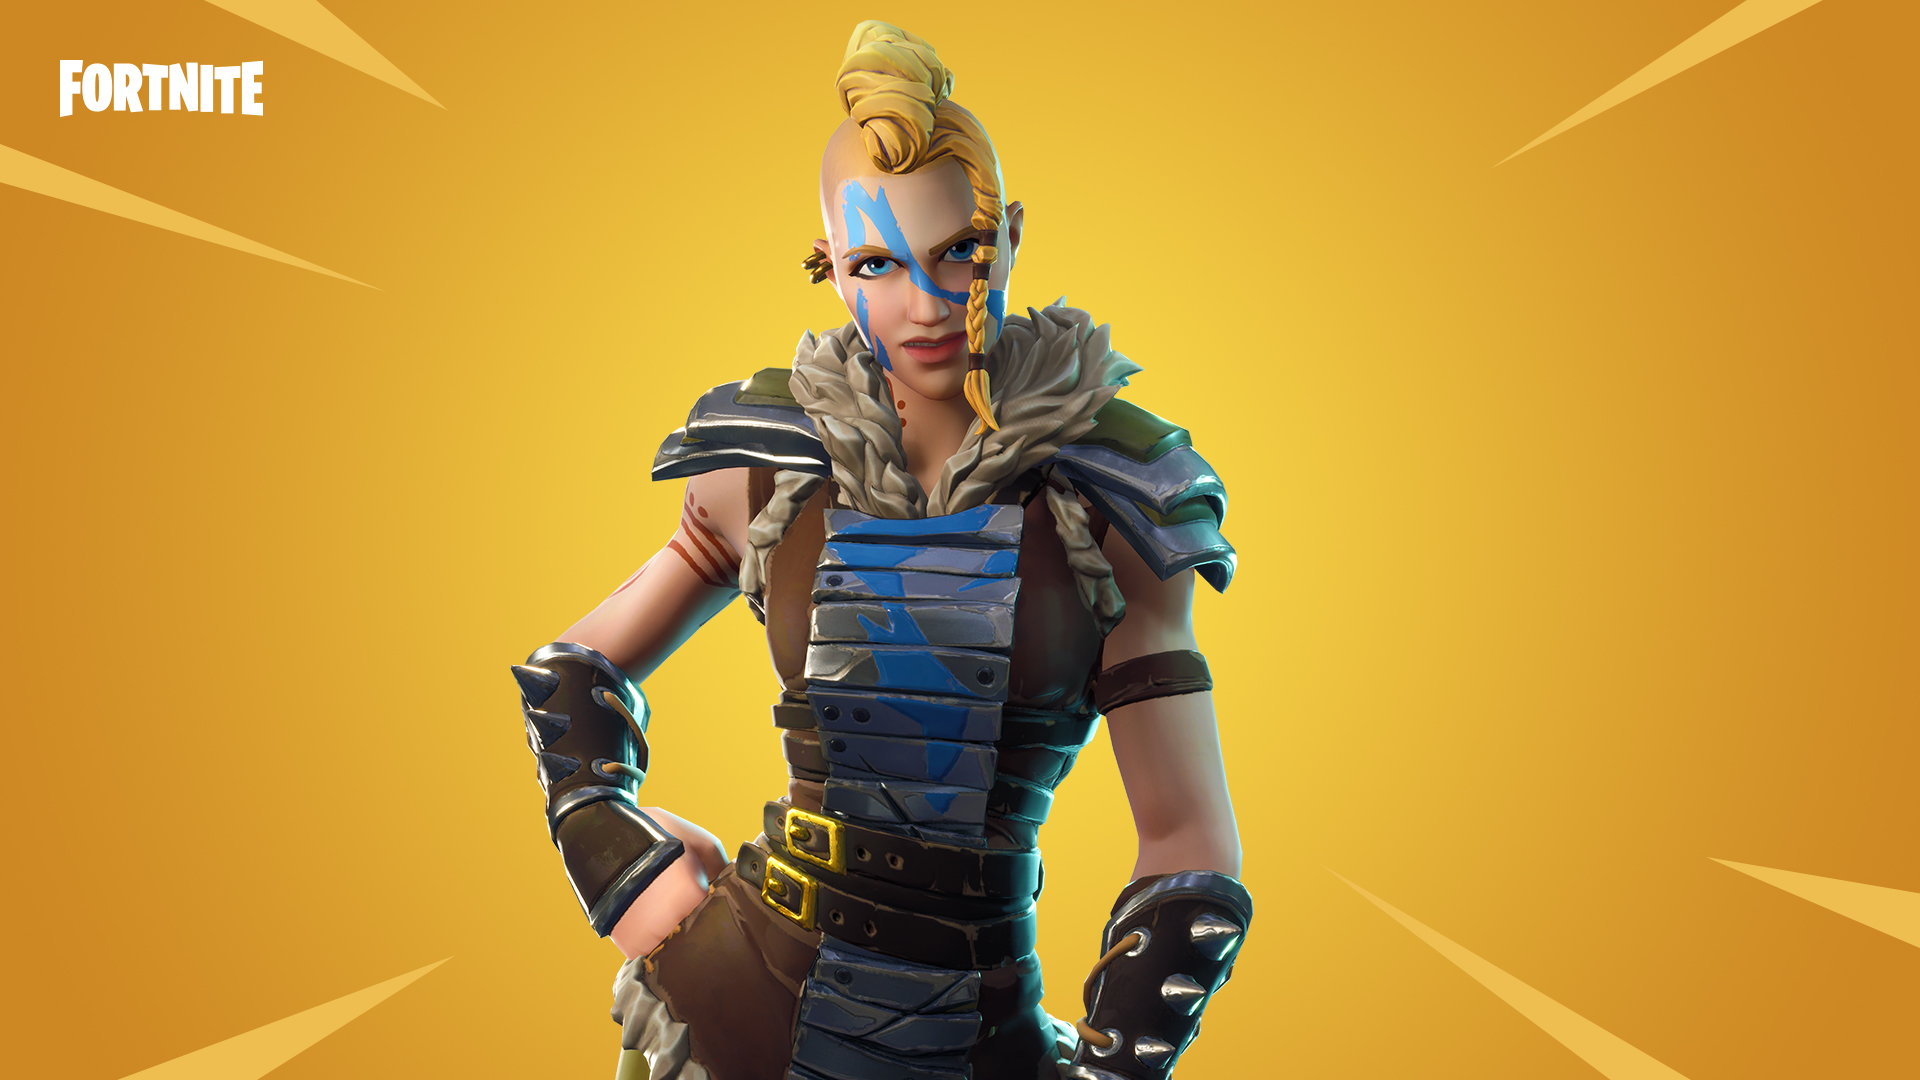 Fortnite-Thora